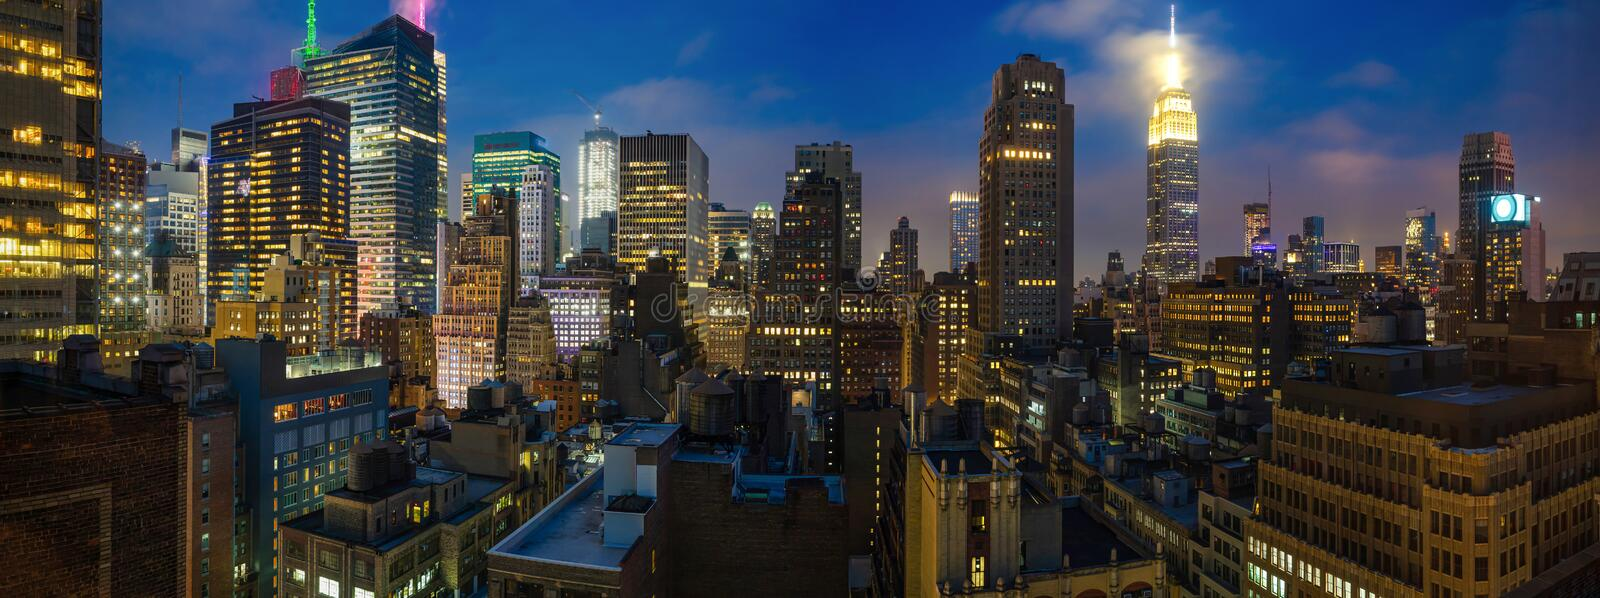 Panoramic view of Manhattan skyscrapers lights, New York city, in the evening stock images